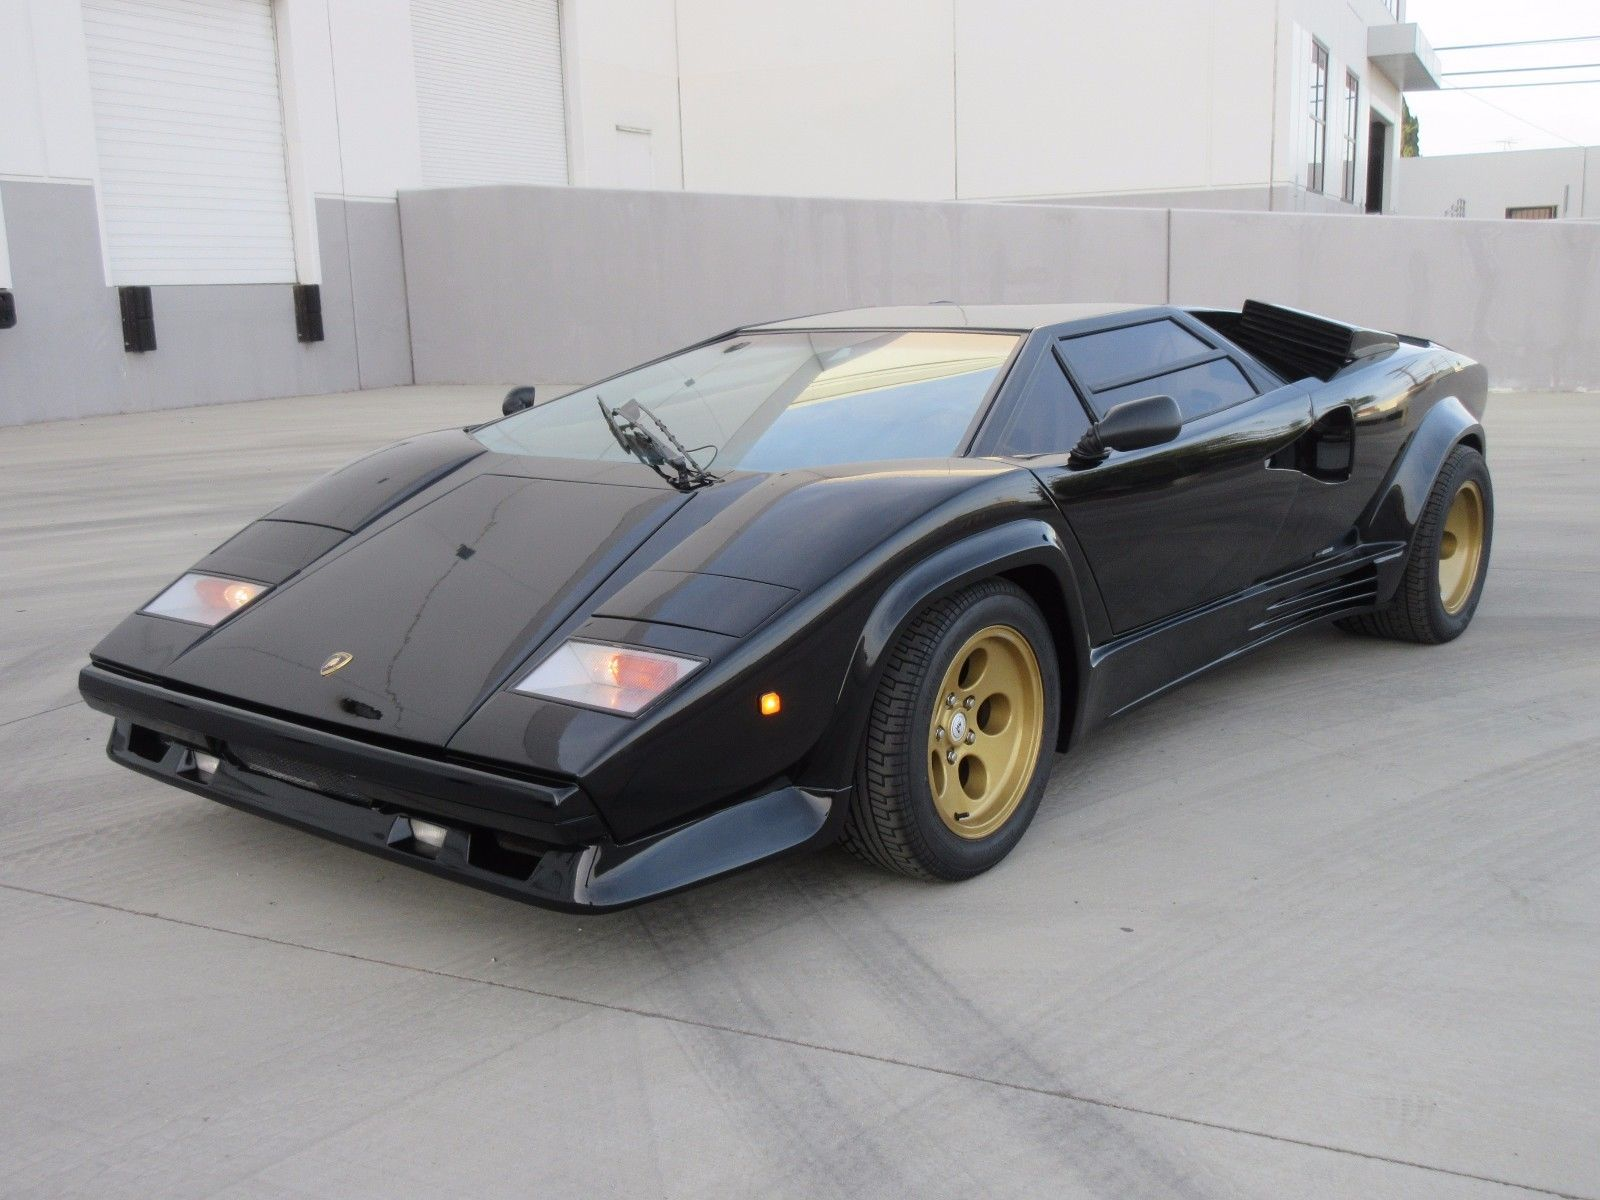 New Paint 1992 Lamborghini Countach Replica For Sale